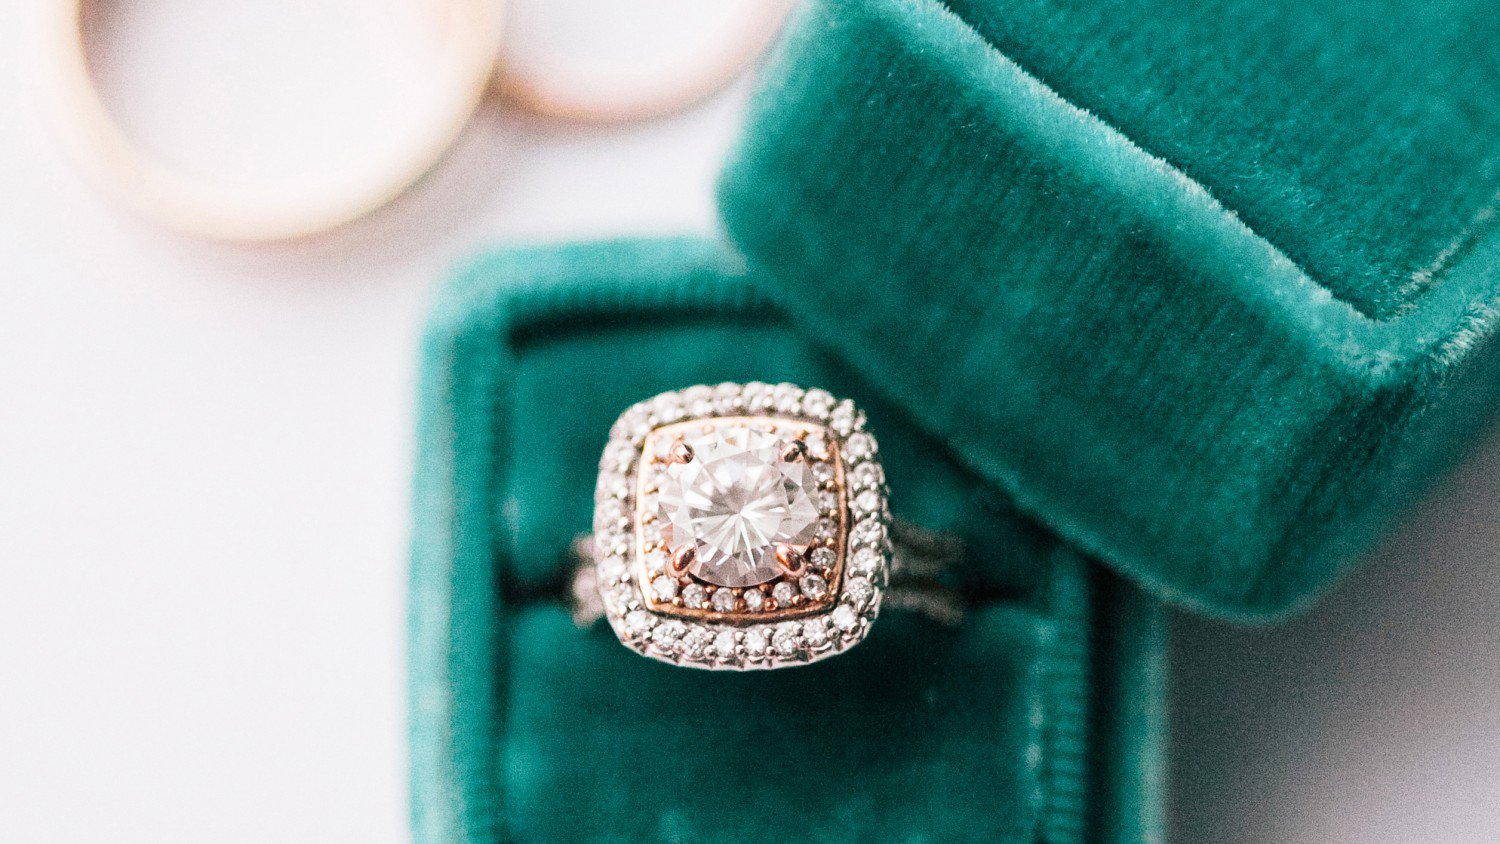 Double halo engagement ring in green box